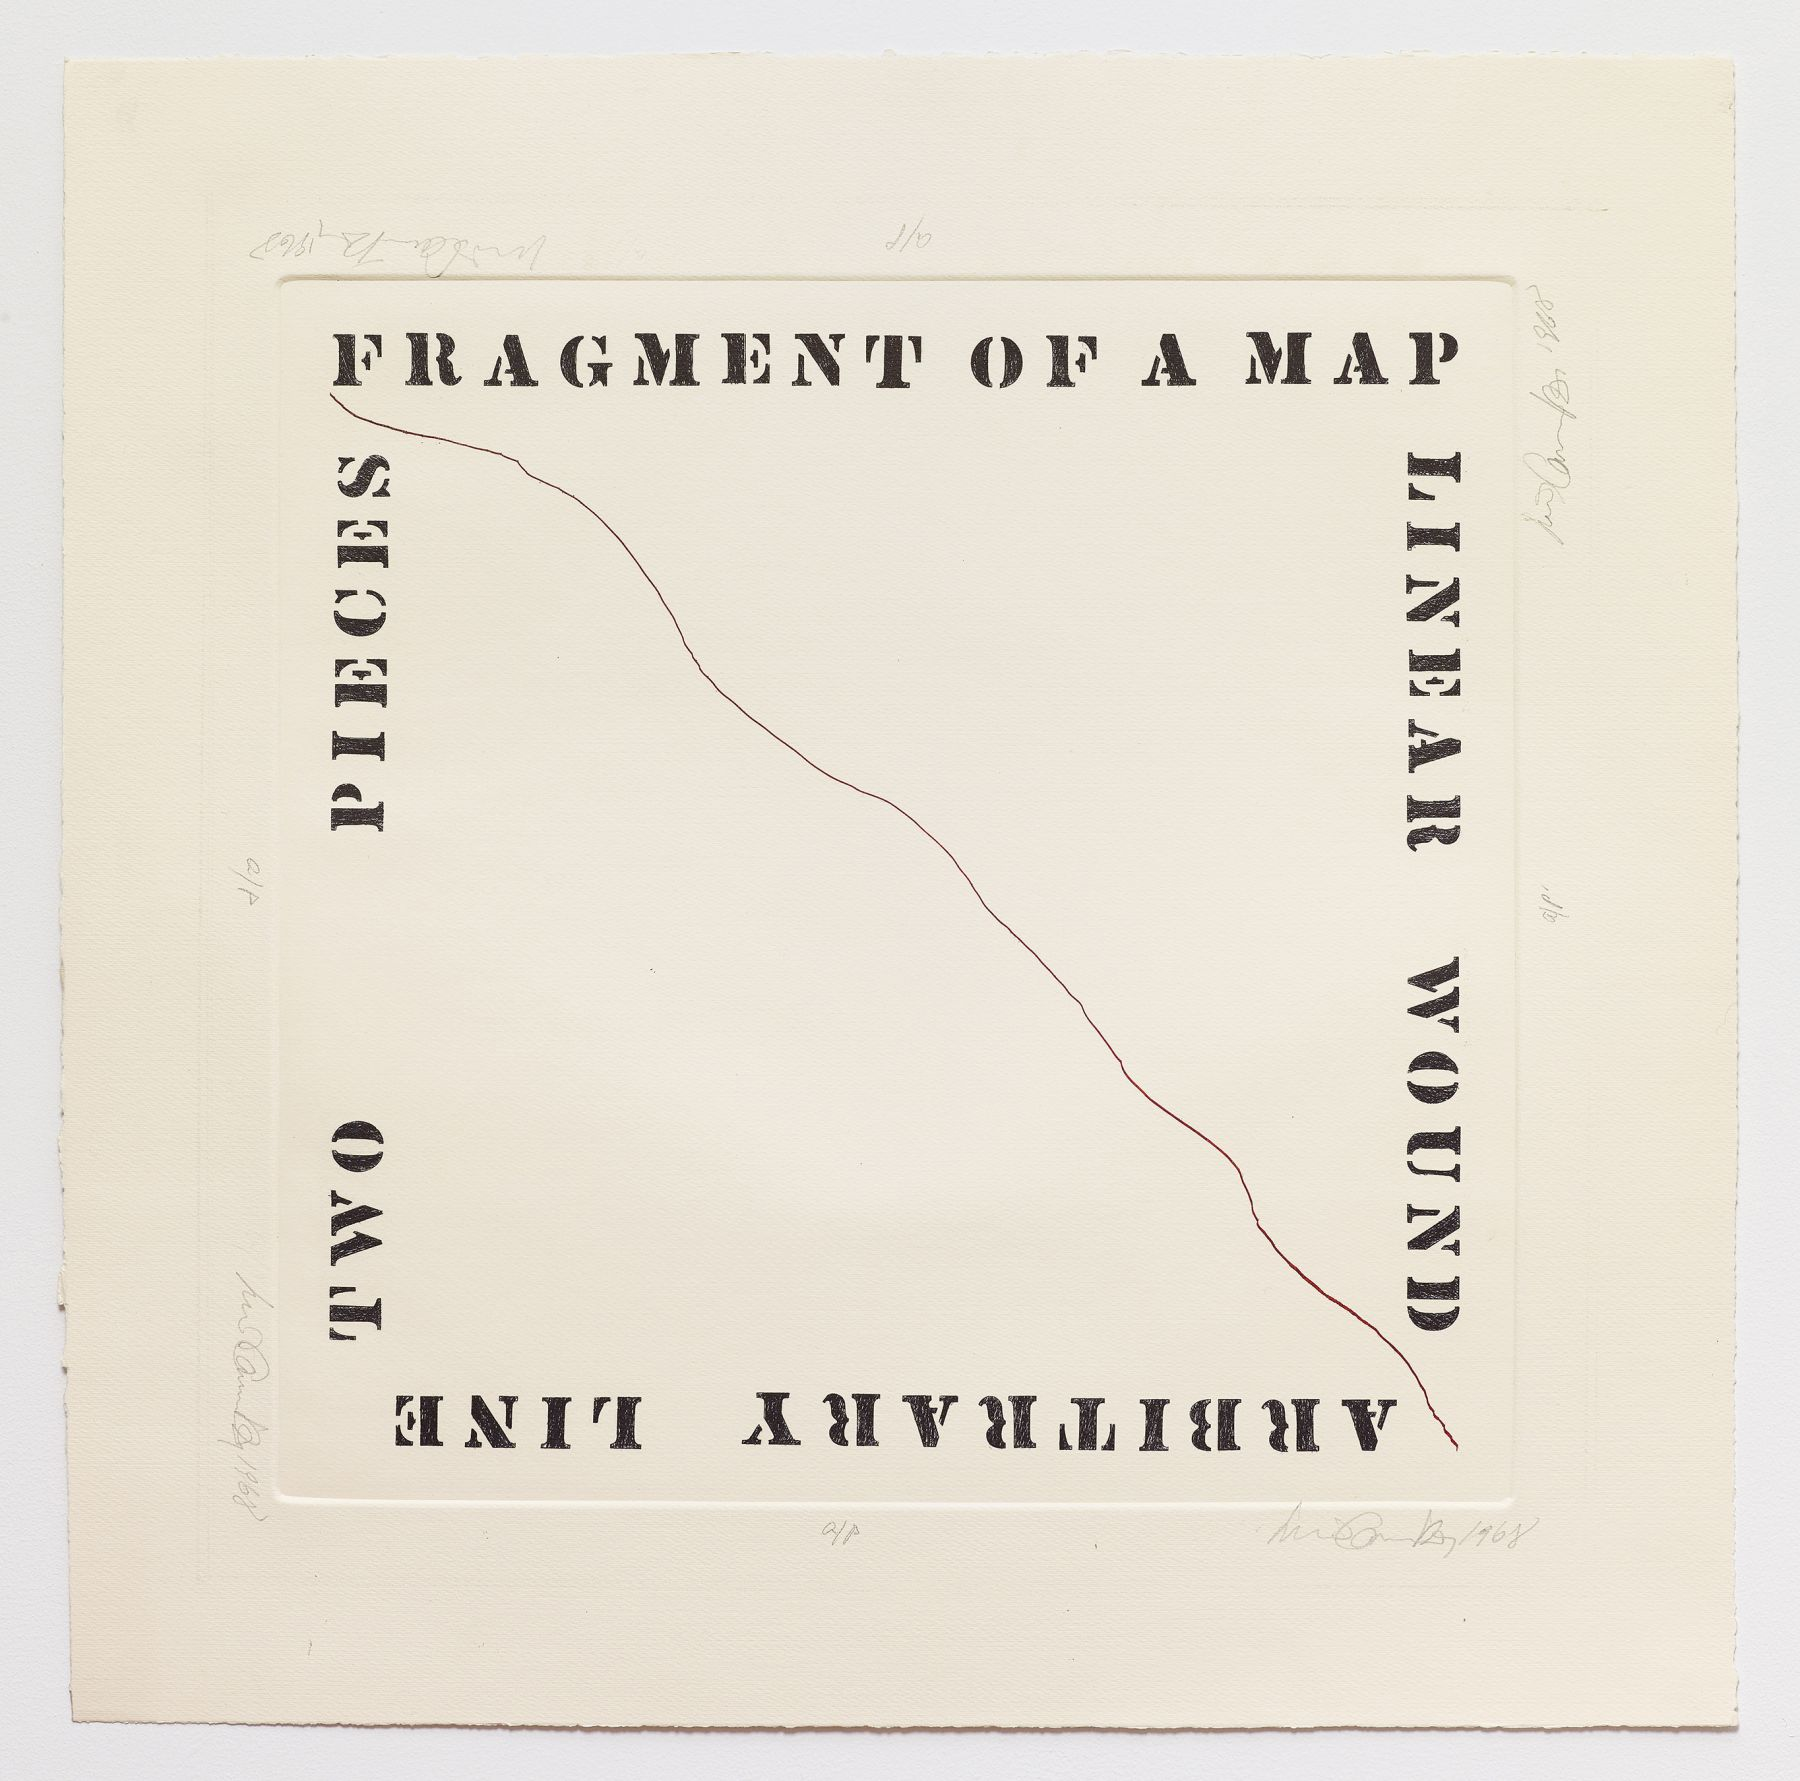 Luis Camnitzer, Fragment of a Map, 1968, Etching